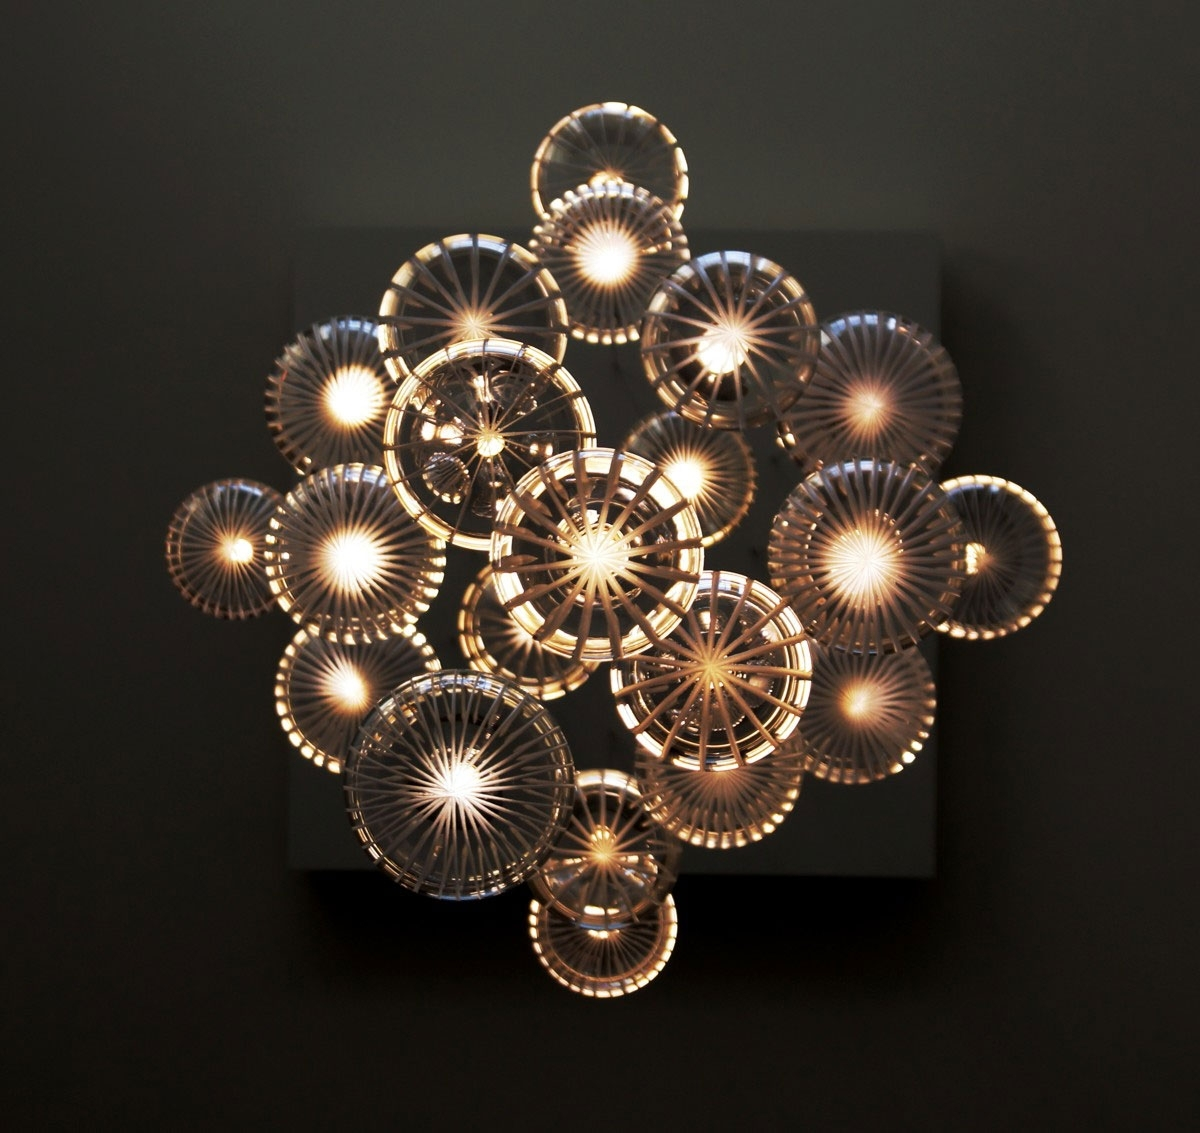 2018 Contemporary Chandeliers Toronto On With Hd Resolution 1200X1133 Intended For Contemporary Chandeliers (View 8 of 15)